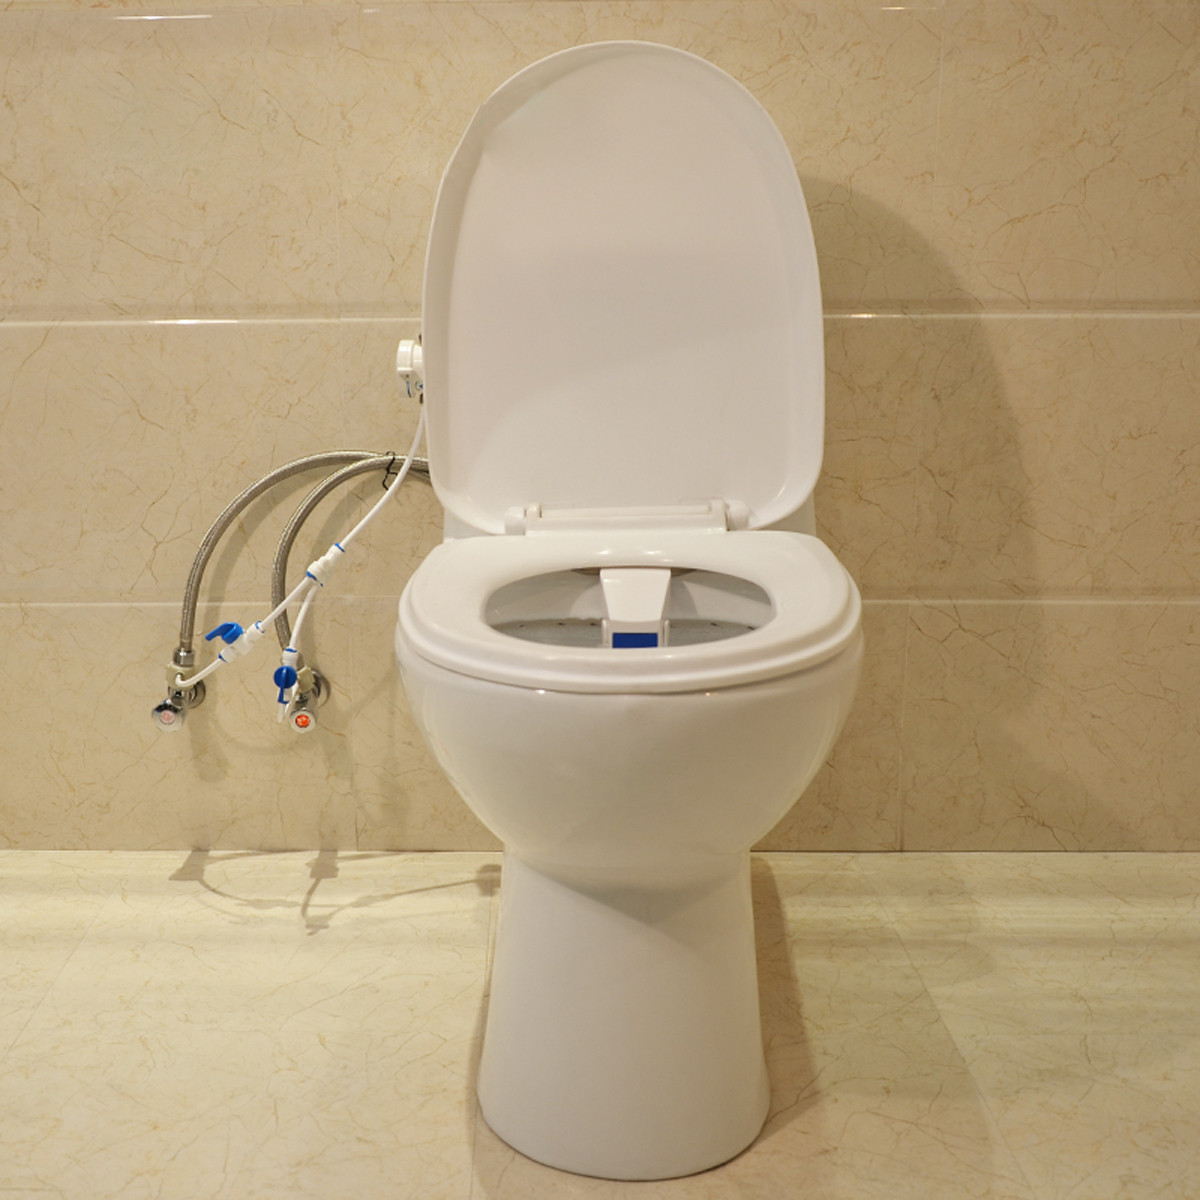 Xueqin EU AU US Standard ABS Smart Toilet Seat Bidet Set Mixer Hot ...